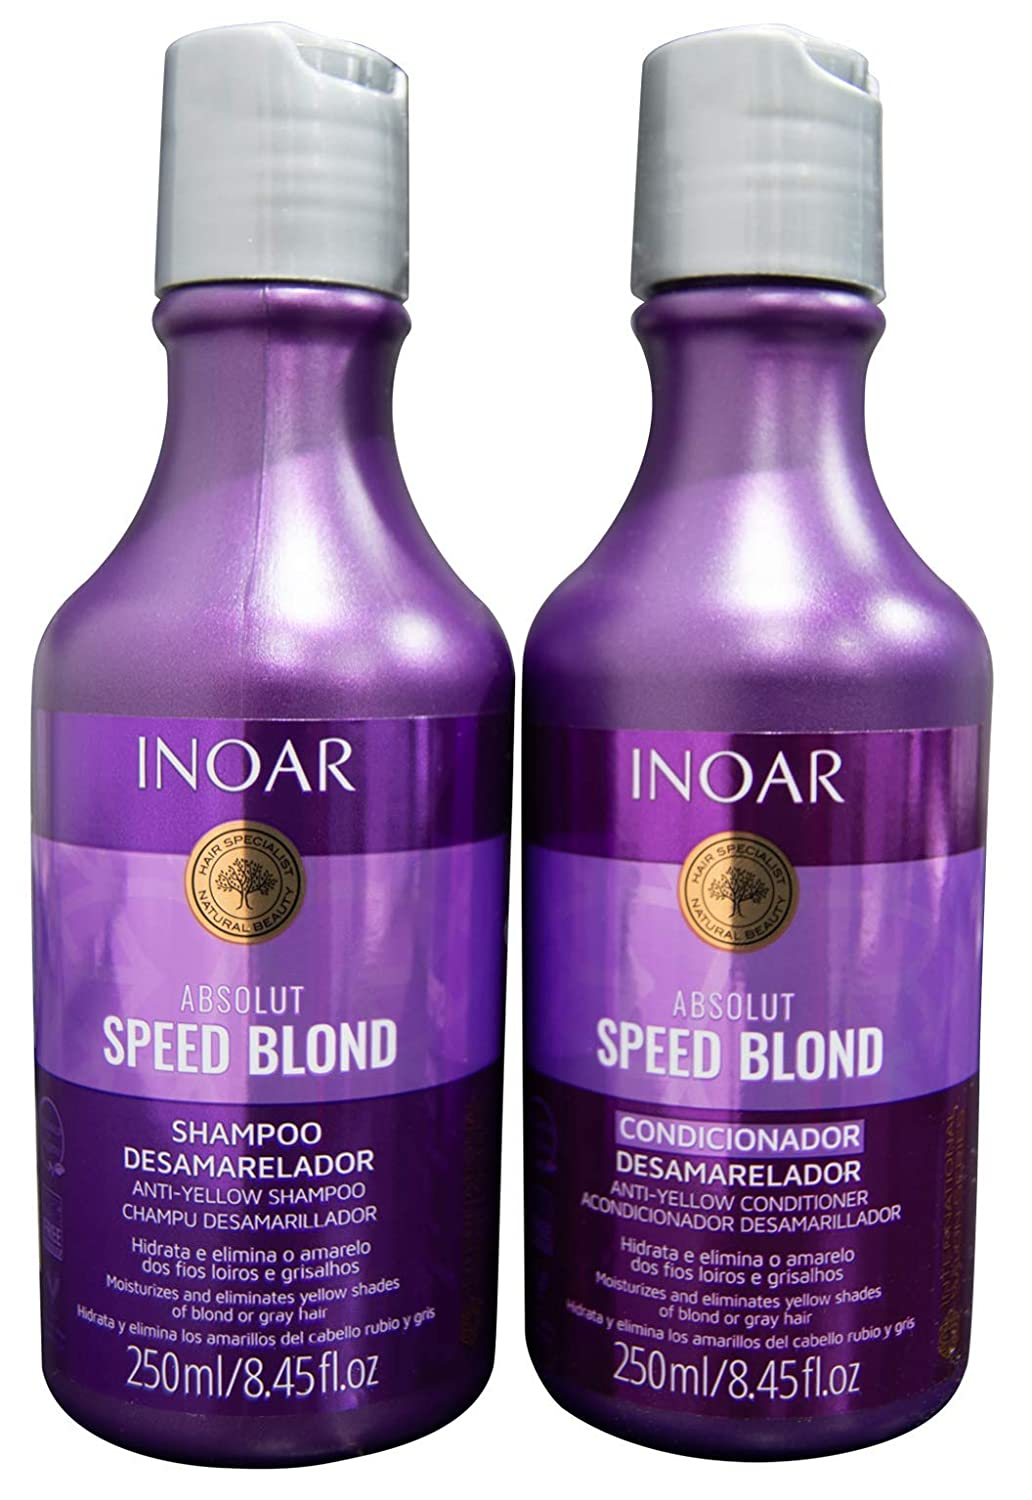 INOAR PROFESSIONAL - Speed Blond Shampoo & Conditioner - Anti-Yellowing Nourishing Treatment For Bleached, Blond, Brassy & Gray Hair Types (8.5 Ounce / 250 Milliliter)